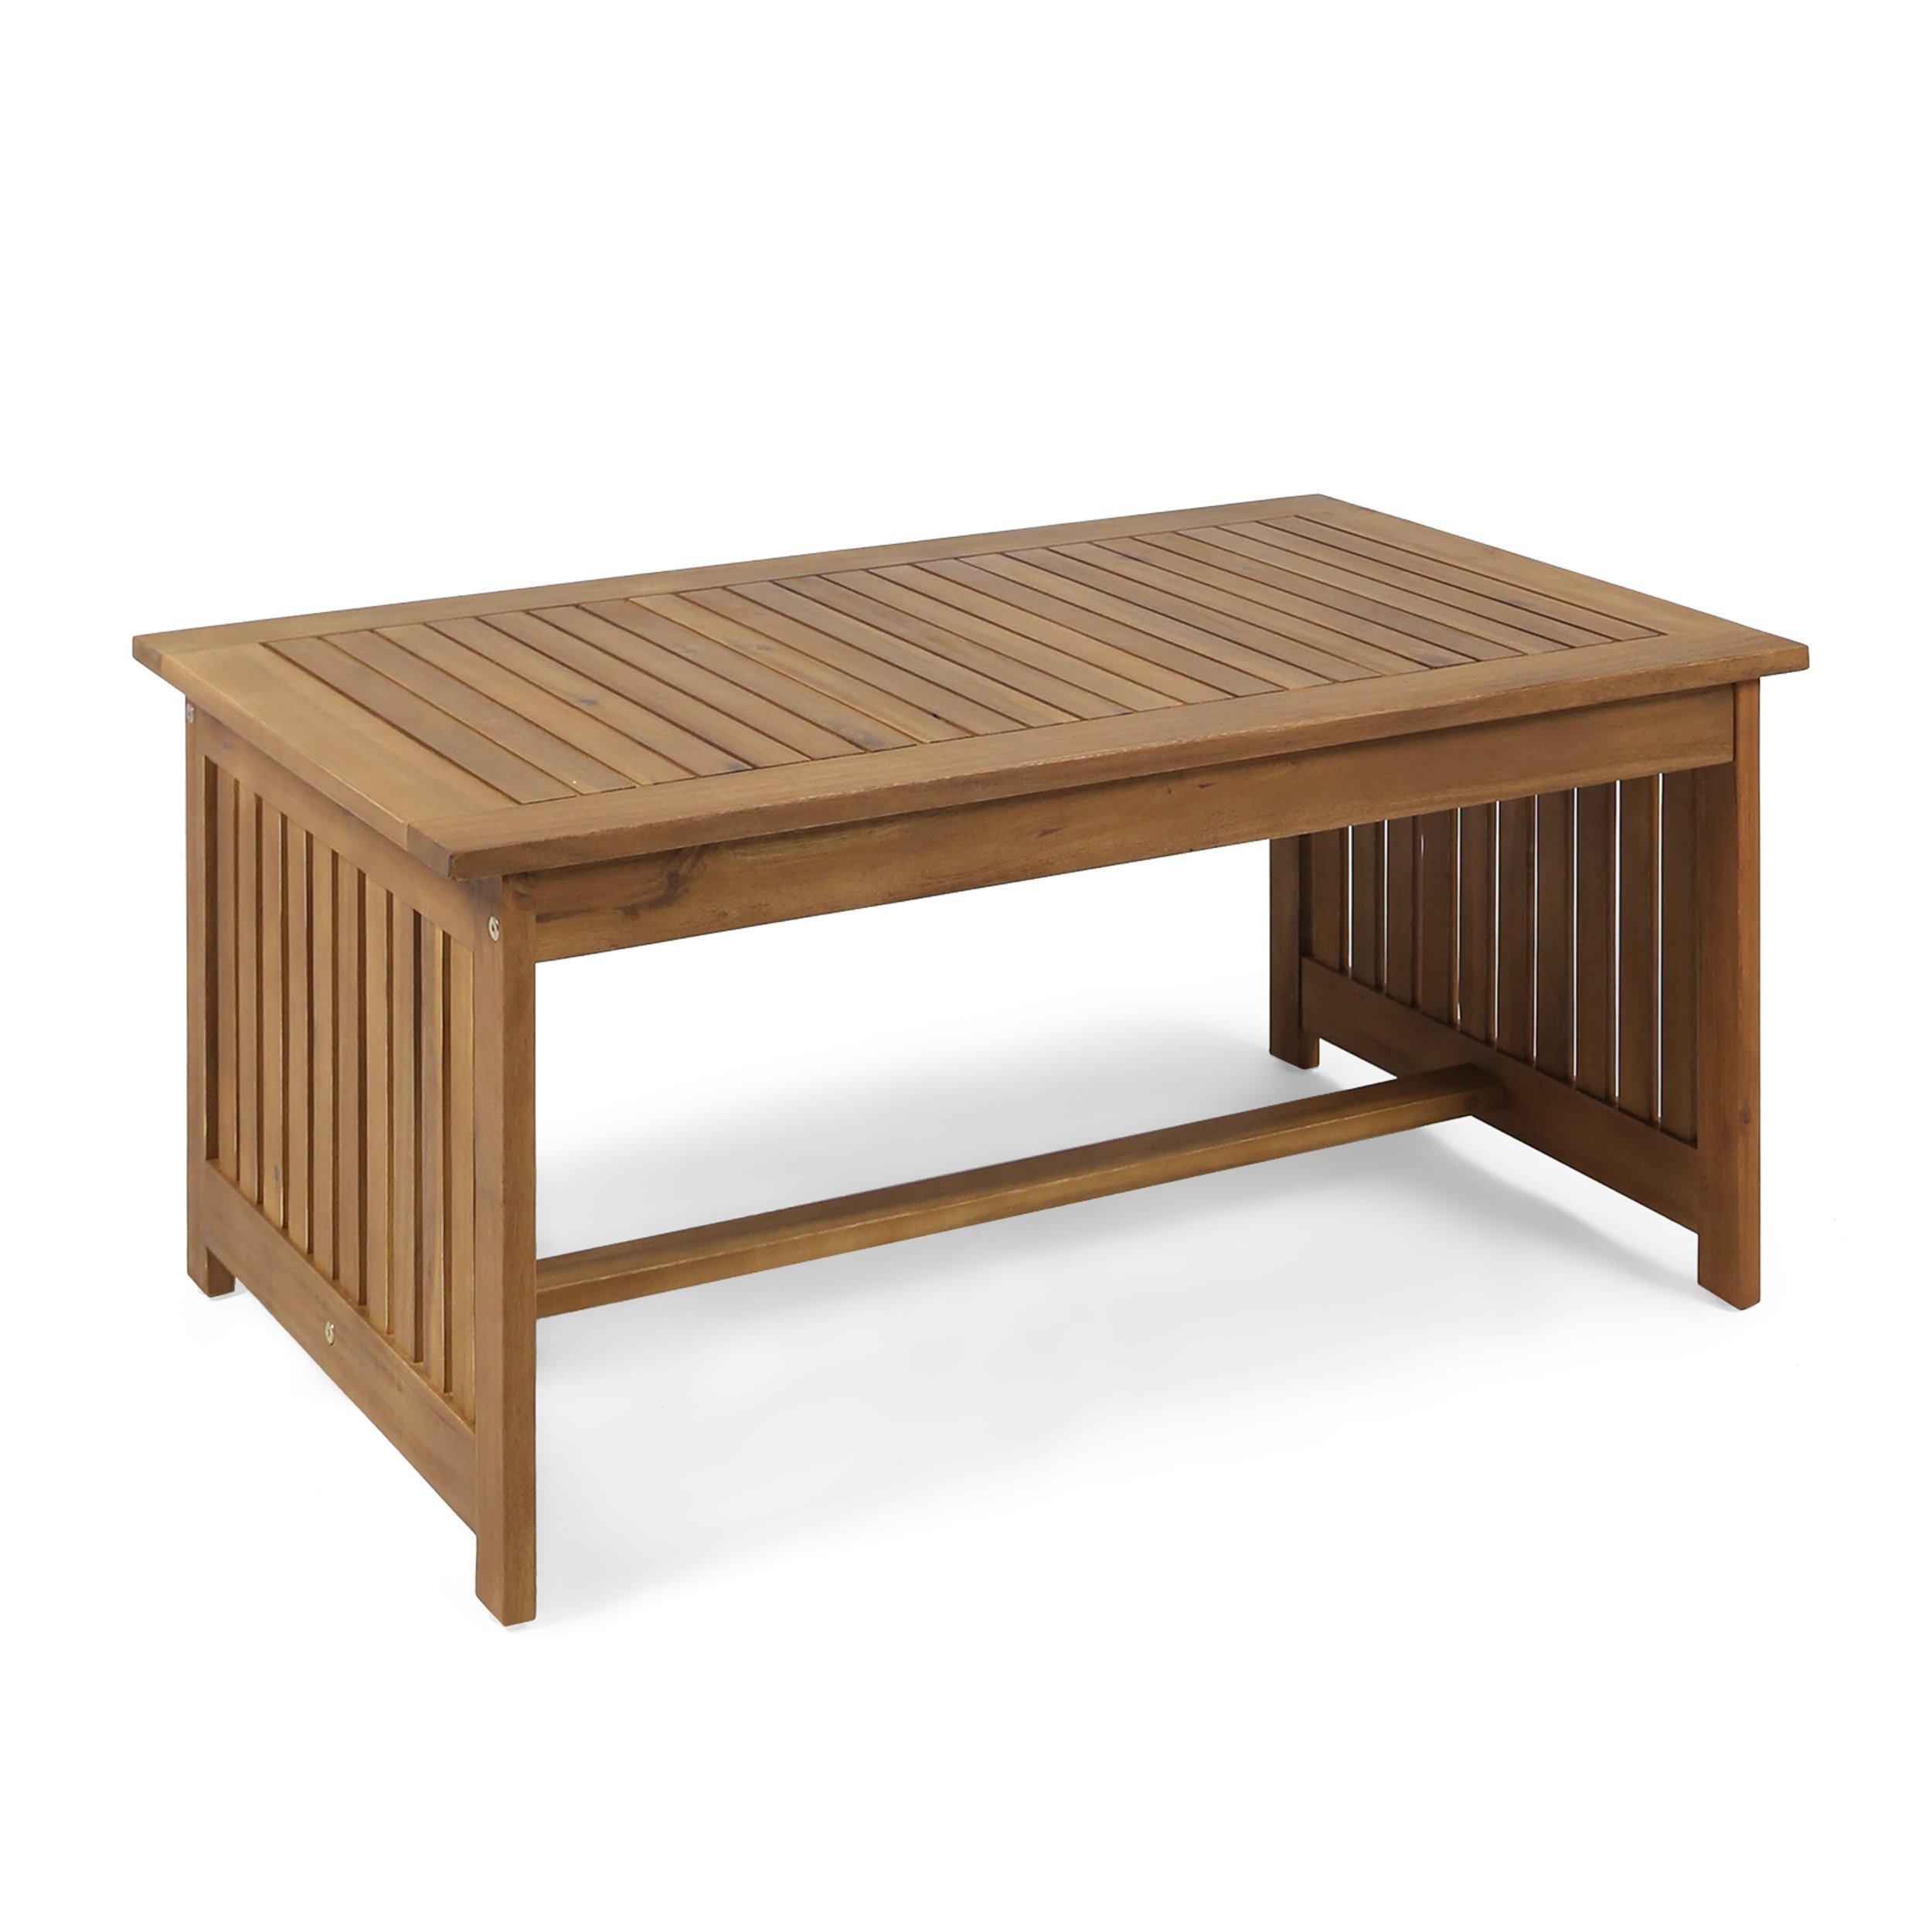 Christopher Knight Home Grace Outdoor Acacia Wood Coffee Table, Brown Patina Finish